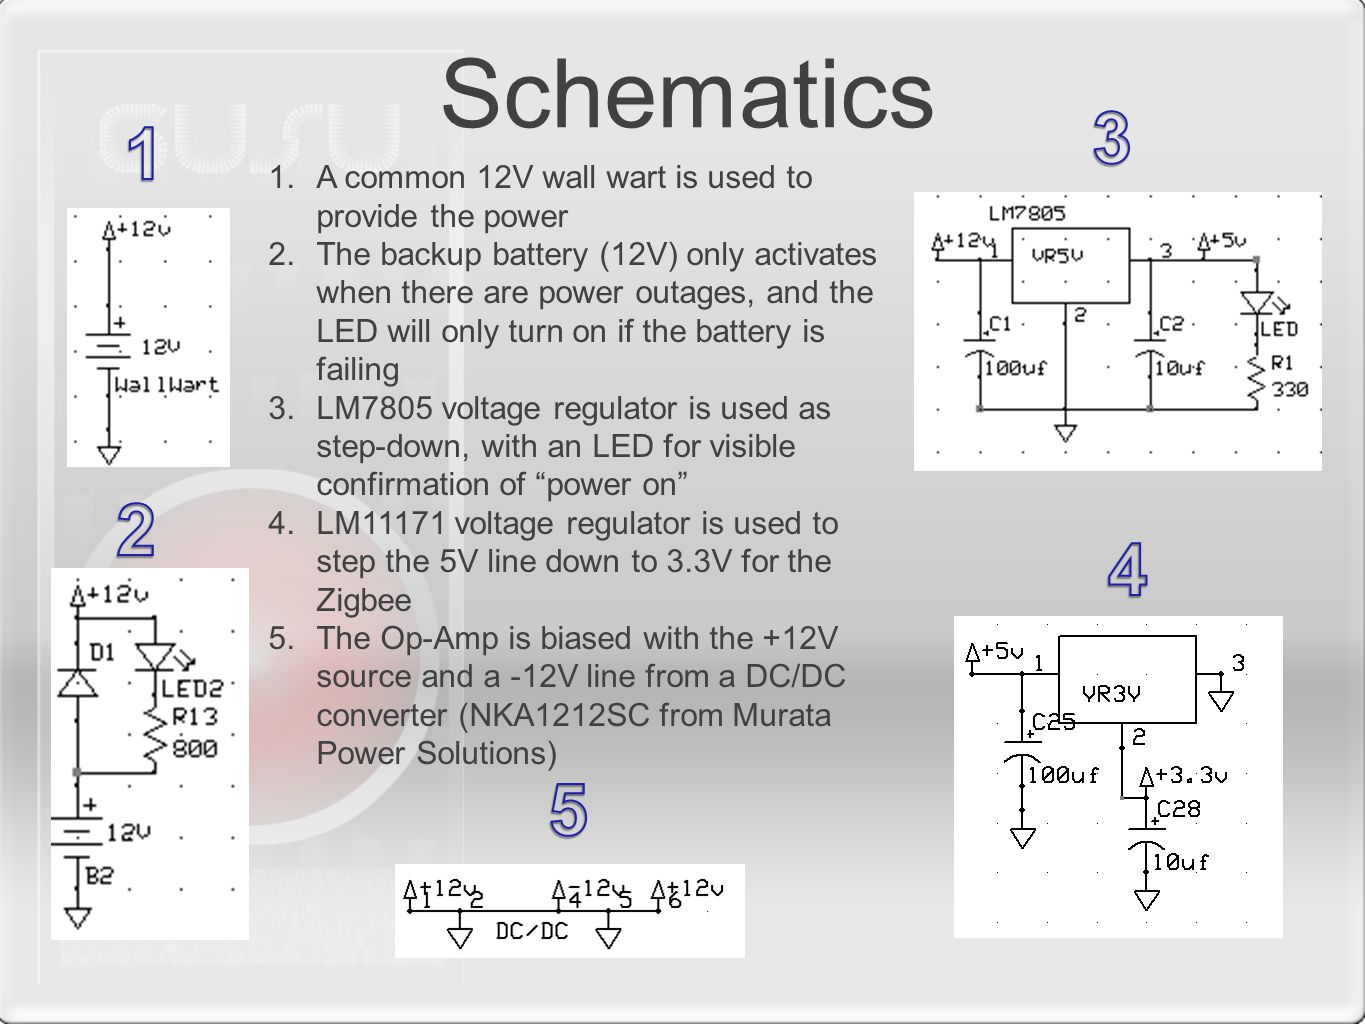 Schematics 1.A common 12V wall wart is used to provide the power 2.The backup battery (12V) only activates when there are power outages, and the LED will only turn on if the battery is failing 3.LM7805 voltage regulator is used as step-down, with an LED for visible confirmation of power on 4.LM11171 voltage regulator is used to step the 5V line down to 3.3V for the Zigbee 5.The Op-Amp is biased with the +12V source and a -12V line from a DC/DC converter (NKA1212SC from Murata Power Solutions)